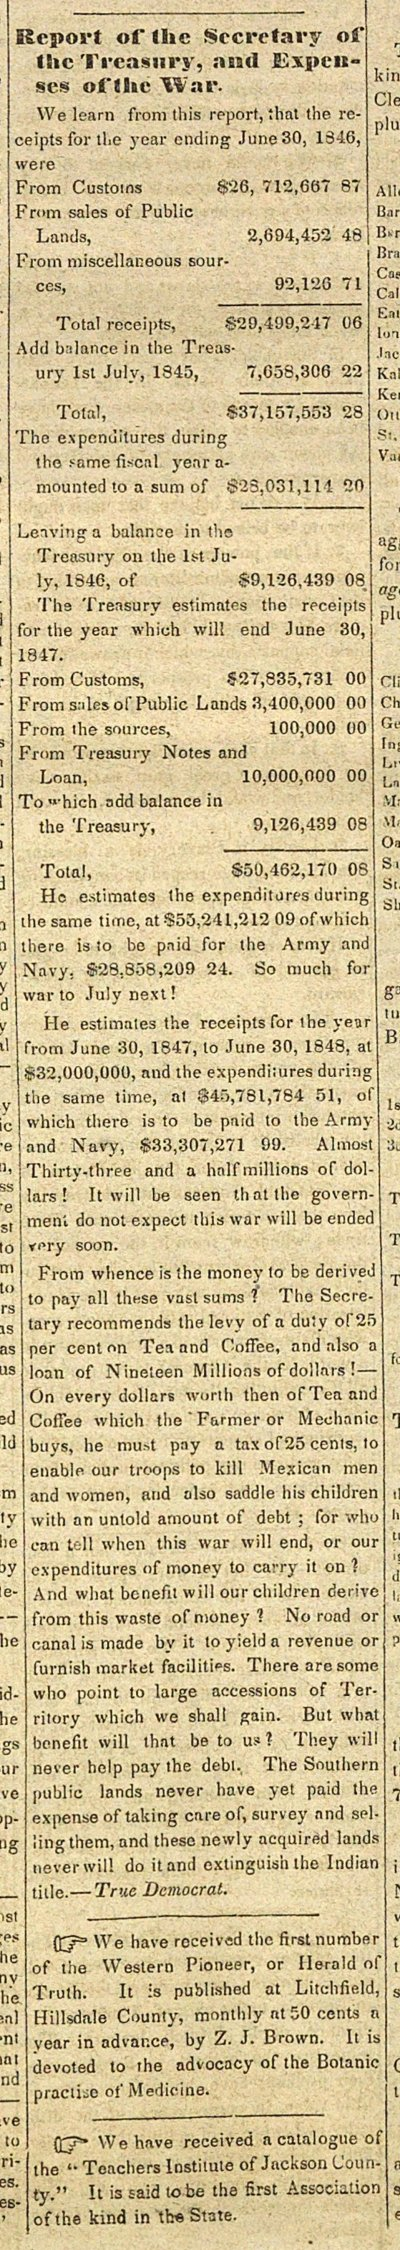 Report Of The Secretary Of The Treasury, And Expenses Of The War image